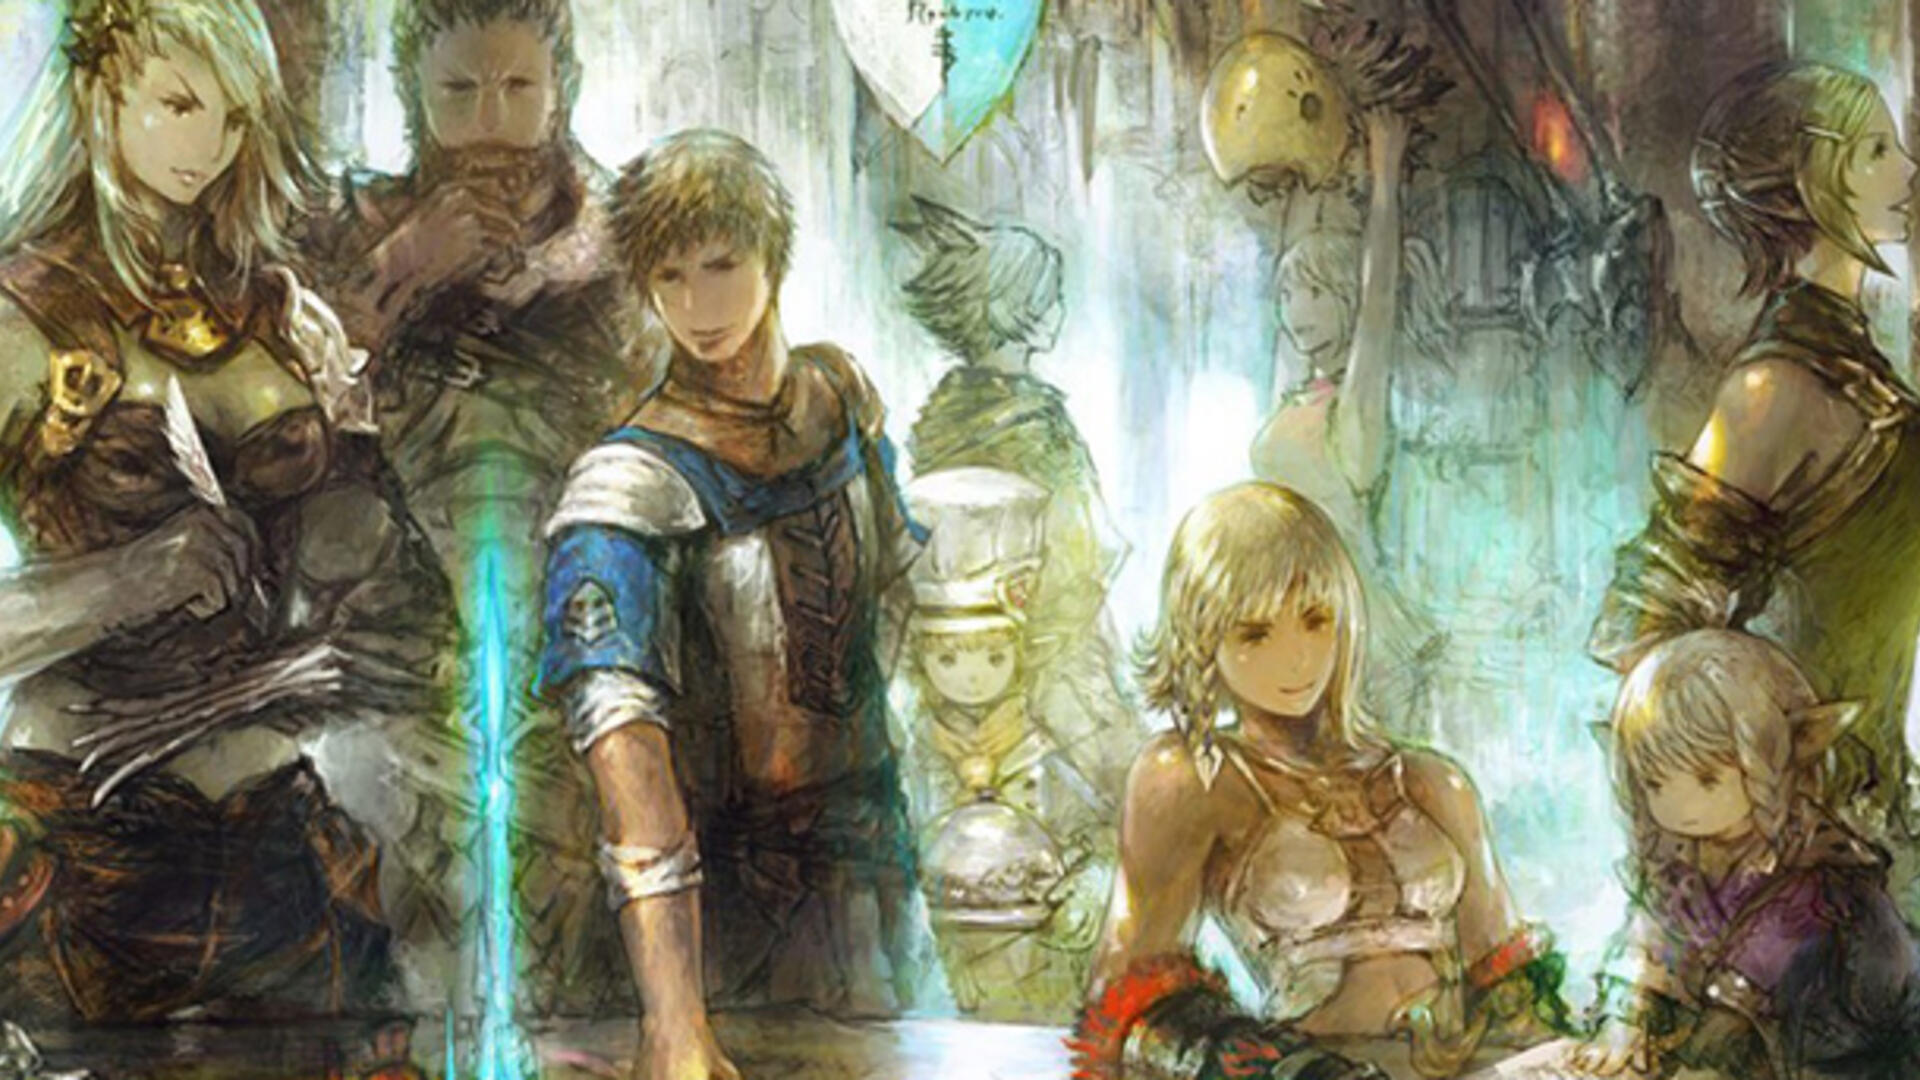 Final Fantasy XIV's A Realm Reborn Content Needs An Overhaul | USgamer